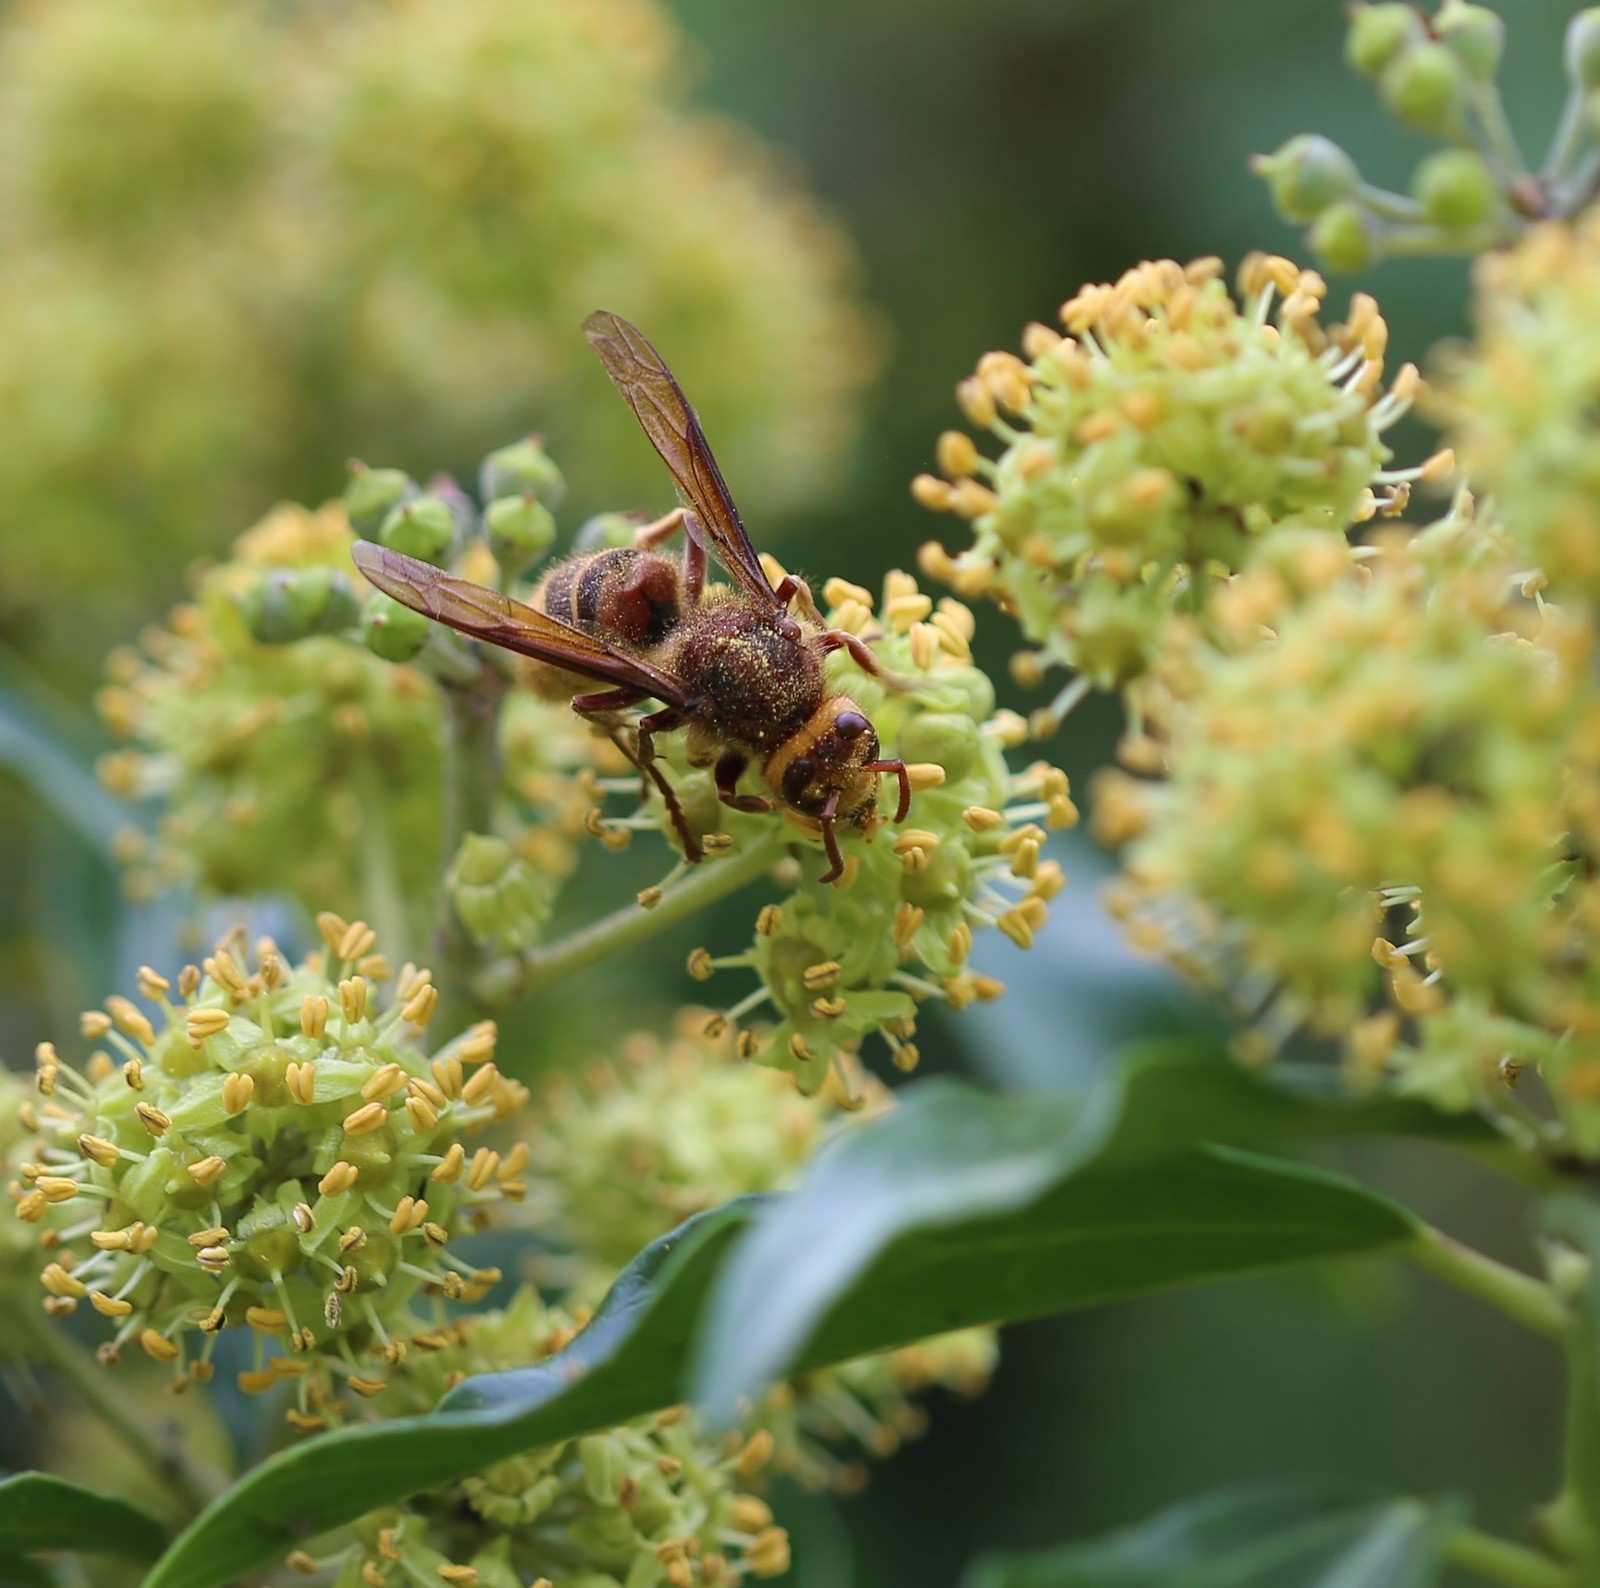 Hornet covered in Ivy pollen in Scaynes Hill